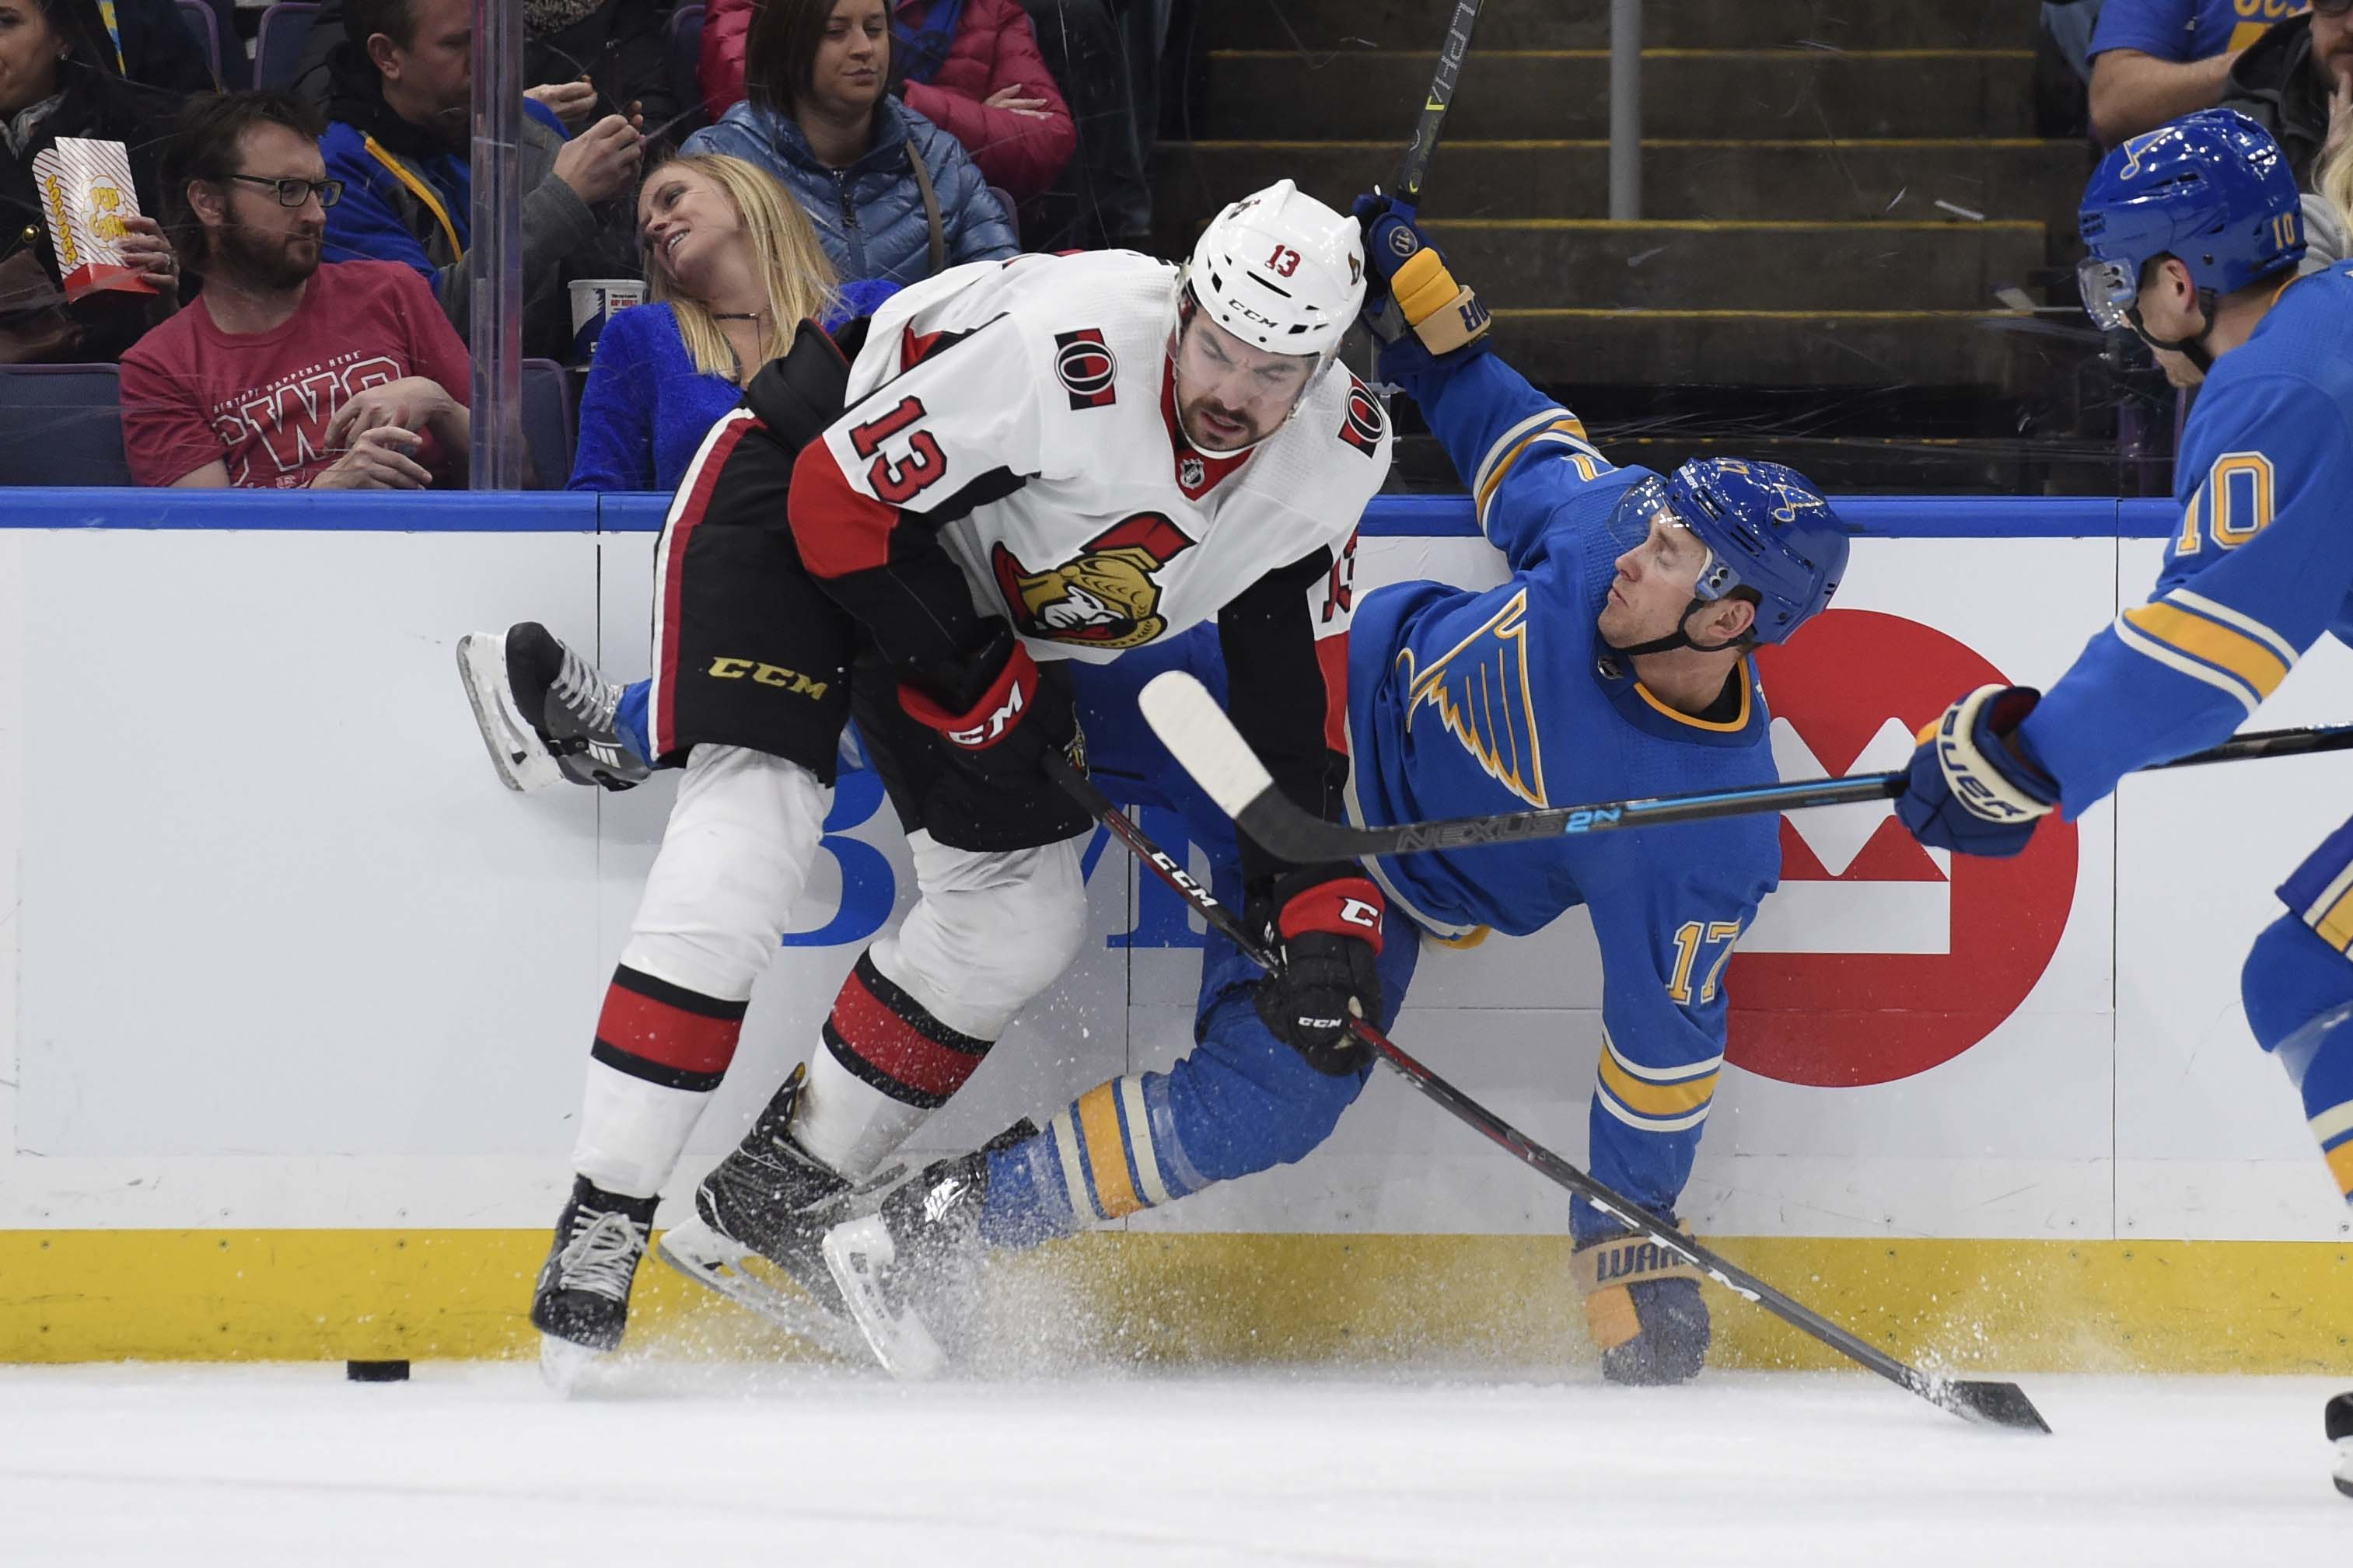 NHL: Ottawa Senators at St. Louis Blues